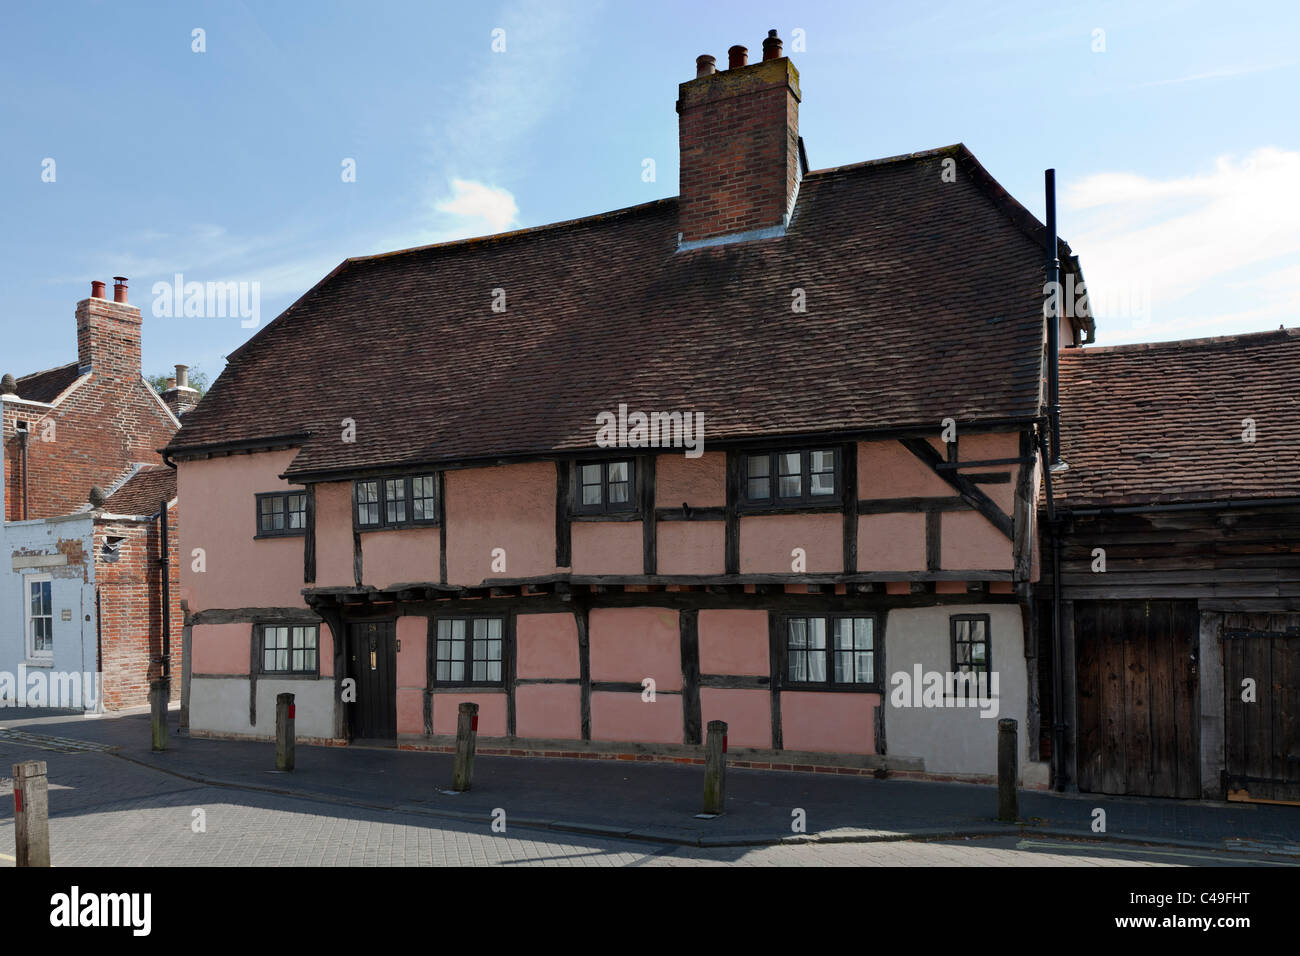 Habitation Maison ancienne Angleterre Hampshire Titchfield UK High Street bois ossature bois rose en bois porte Photo Stock